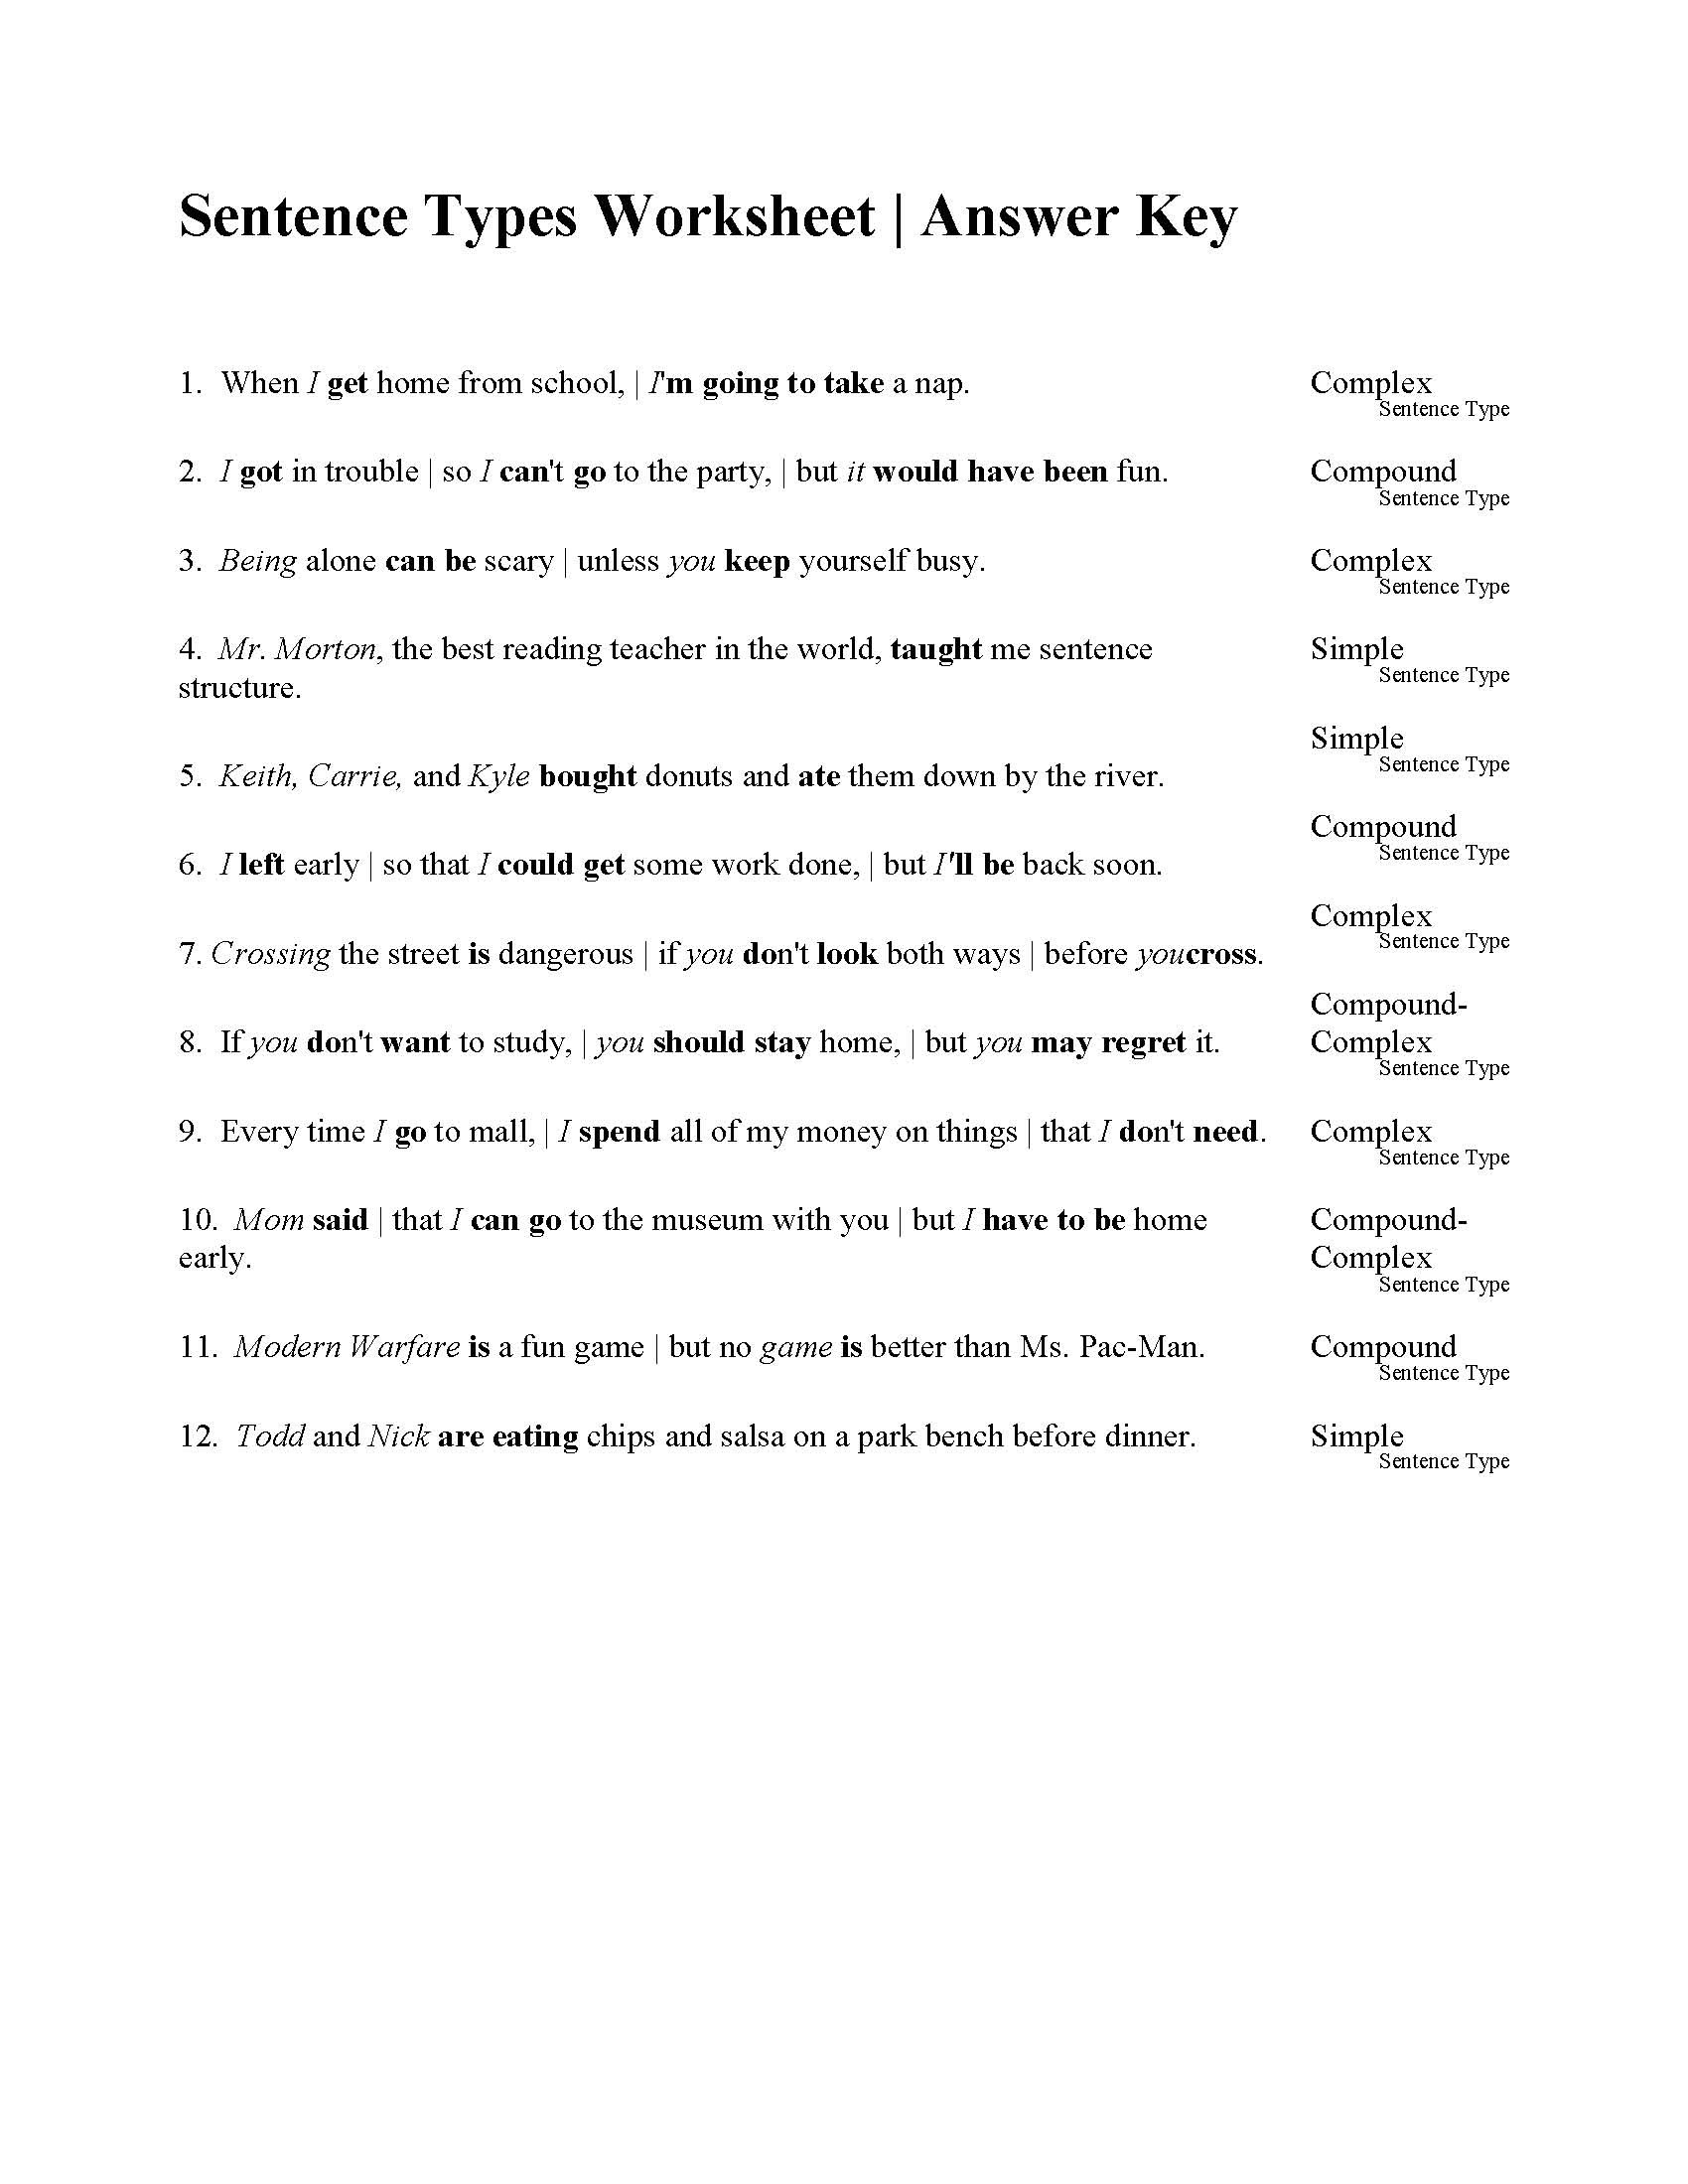 Free Printable Sentence Structure Worksheets Sentences Types Worksheet Answers Sentence Exercises